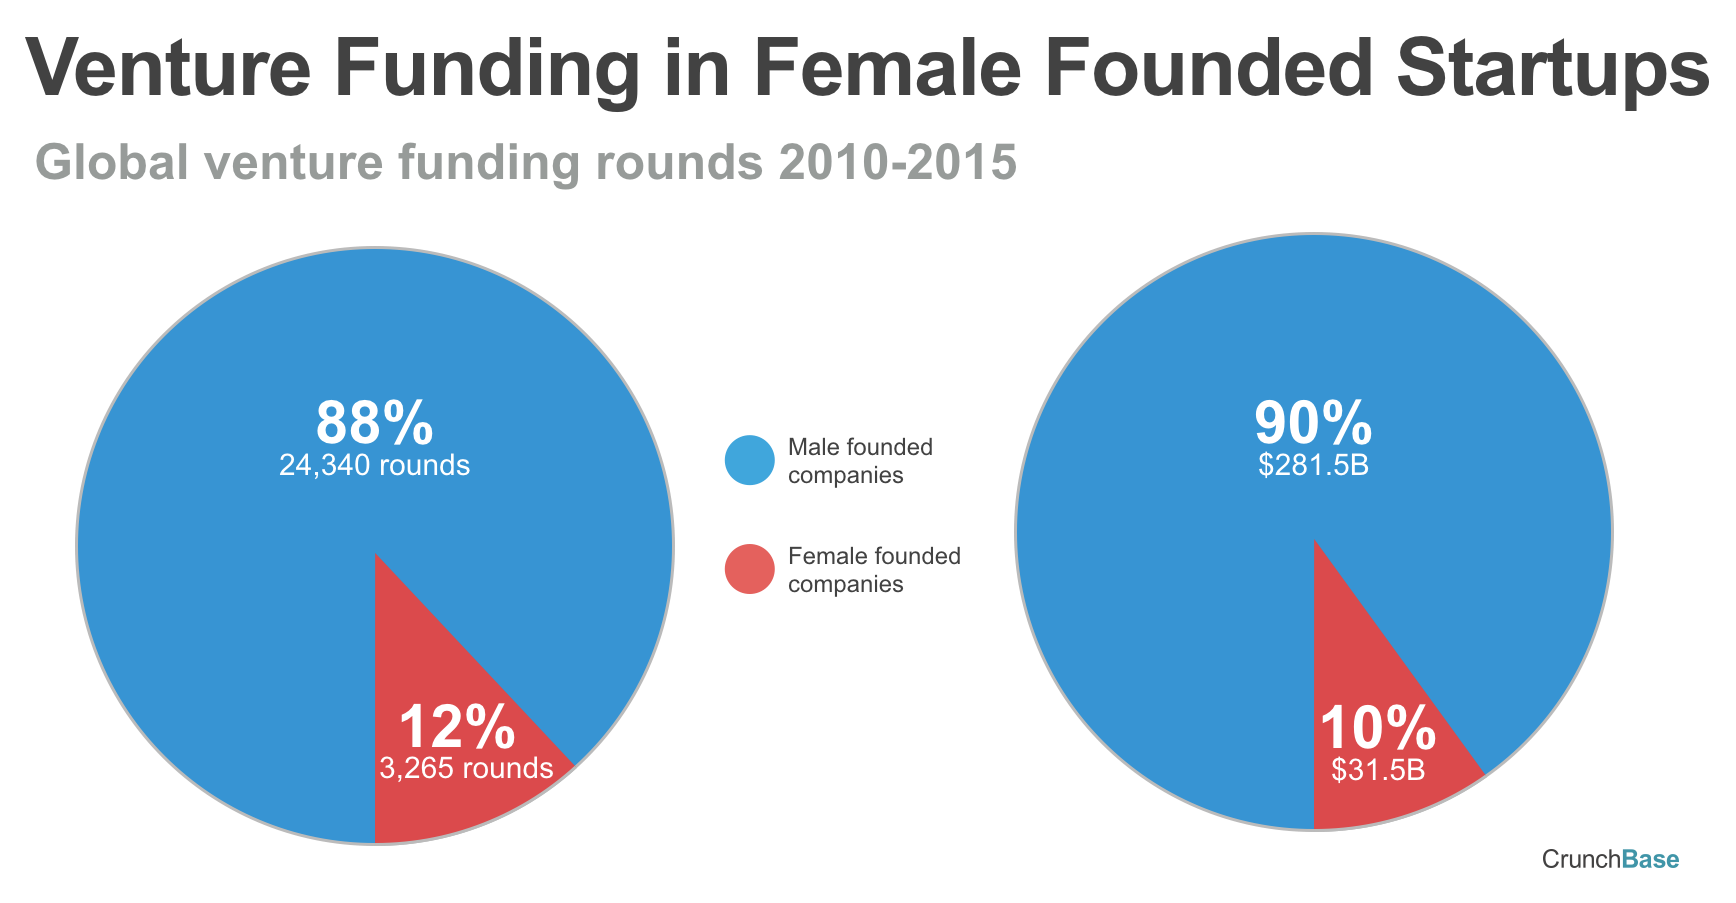 Venture Funding Rounds in Female Funded Startups